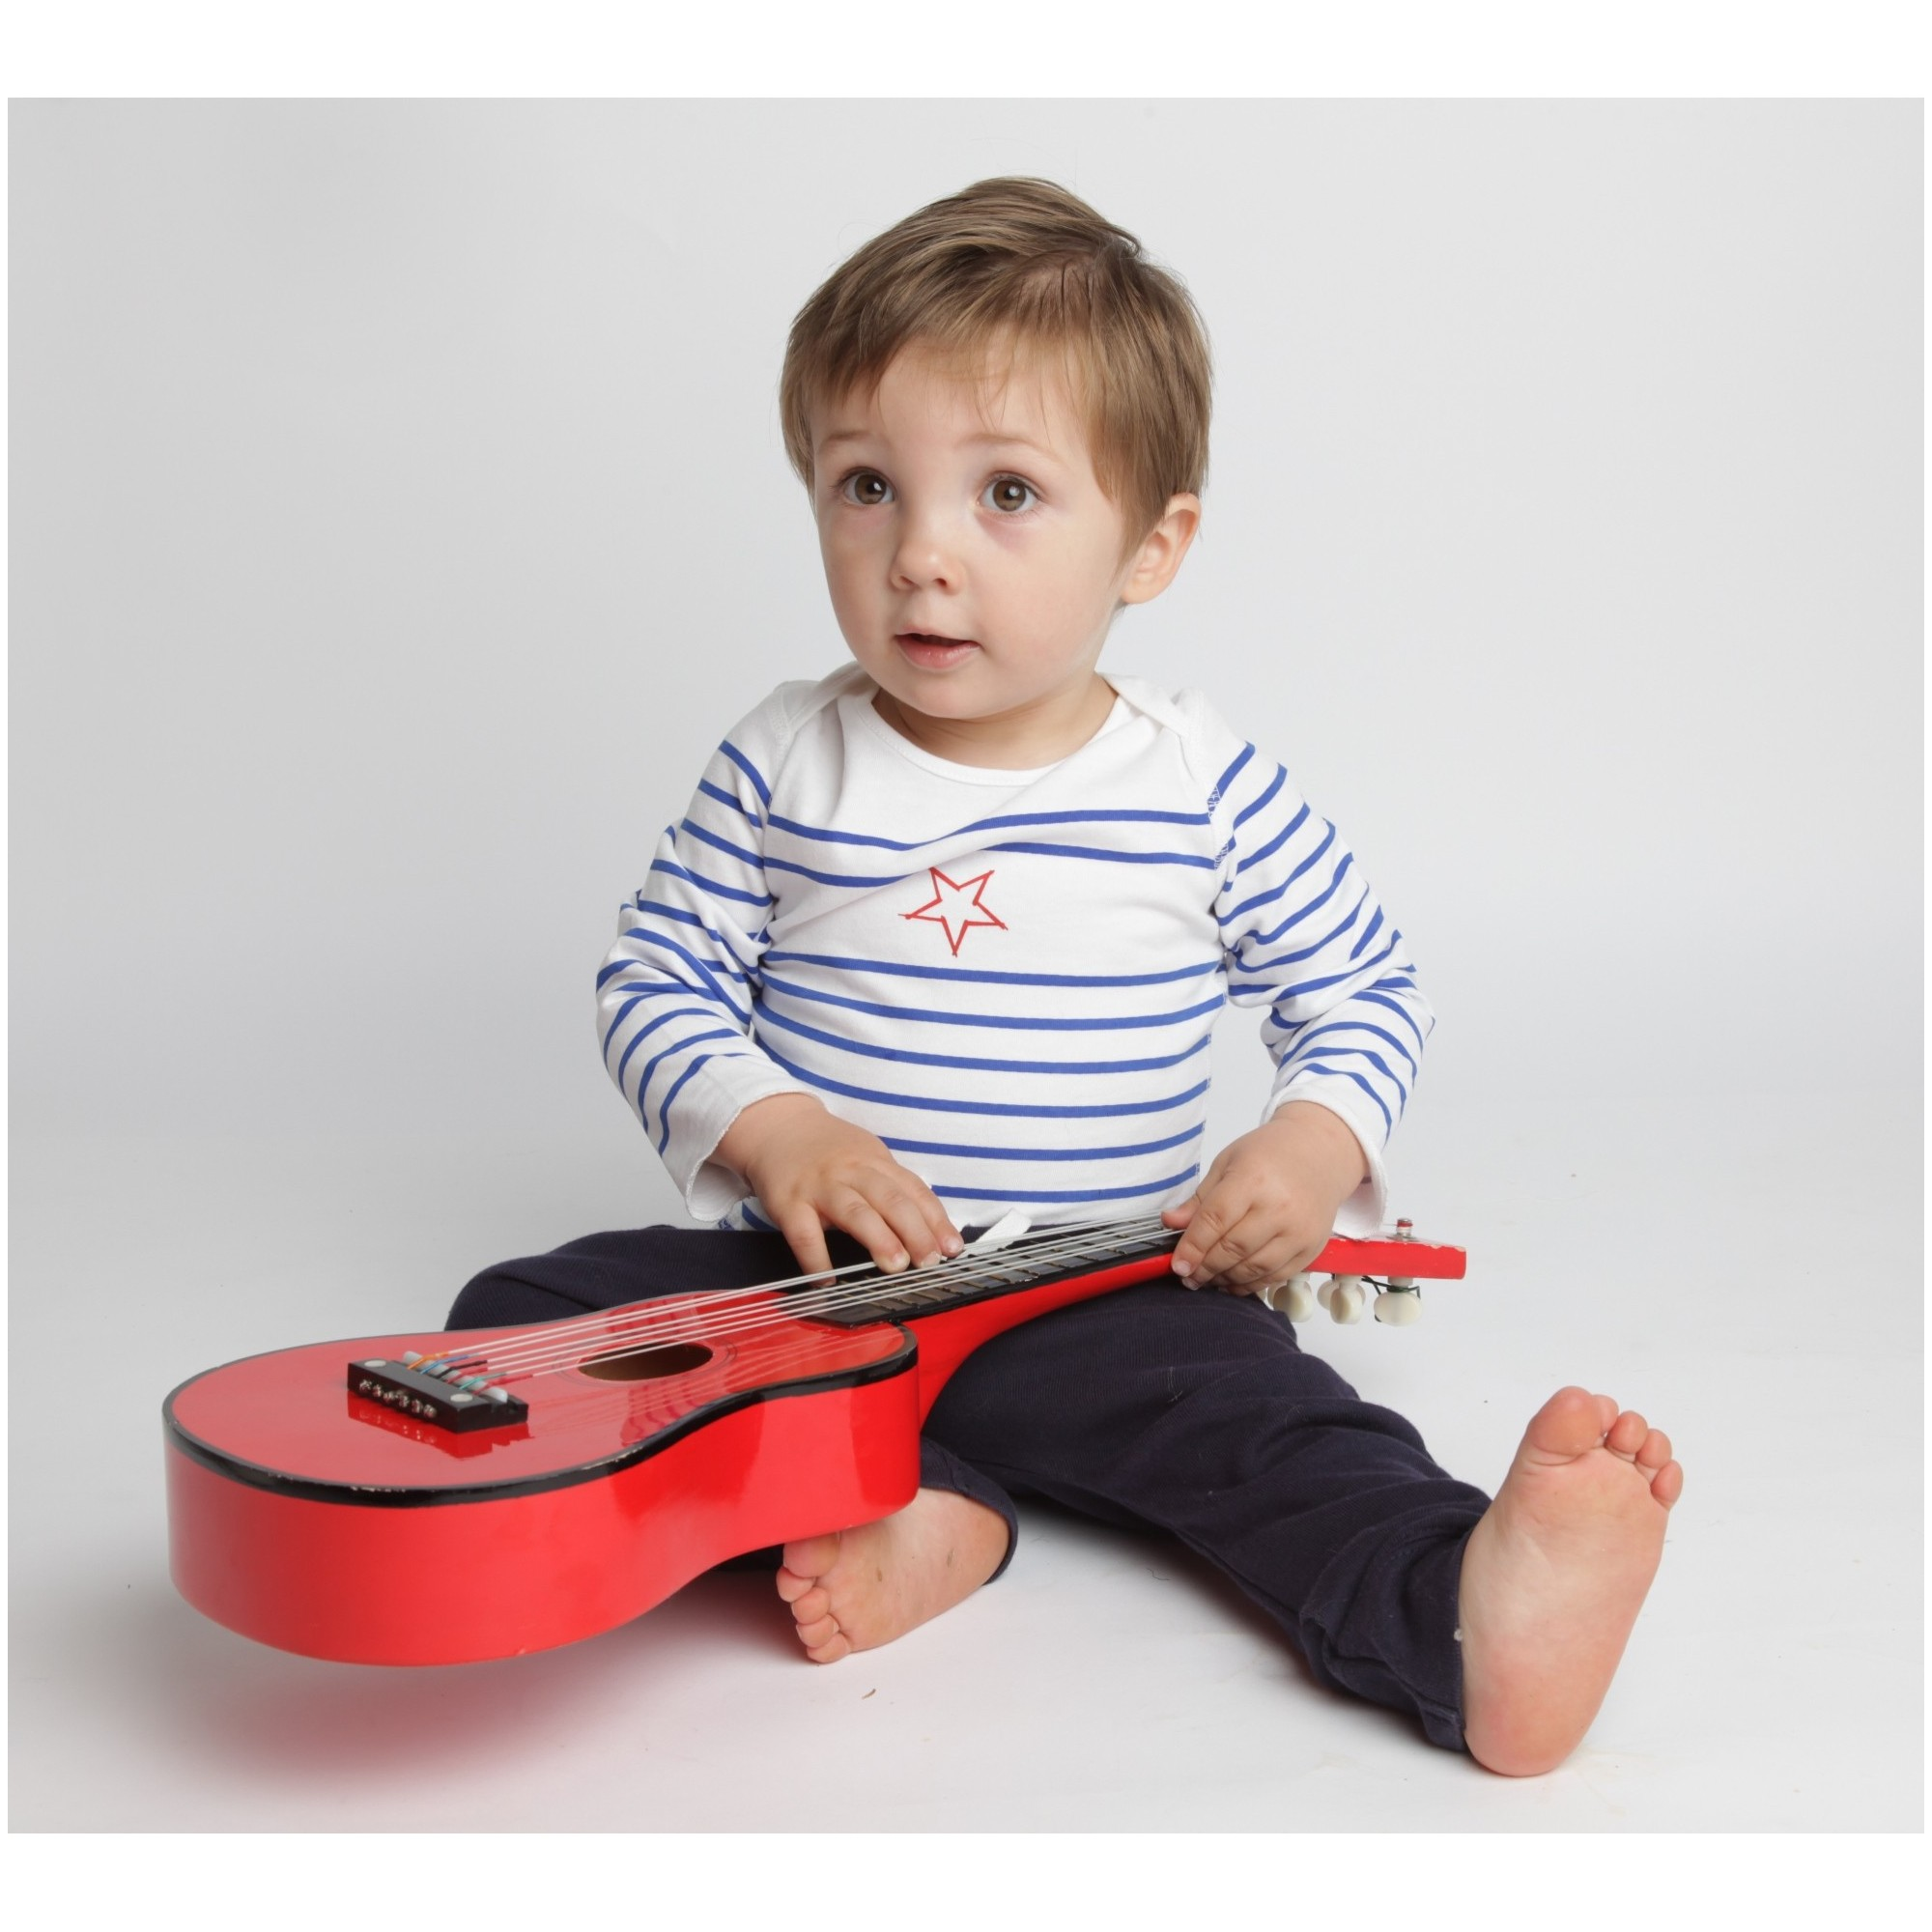 Long sleeves baby T-Shirt with blue stripes and red star 100% soft cotton with navy blue jogging-sarouel